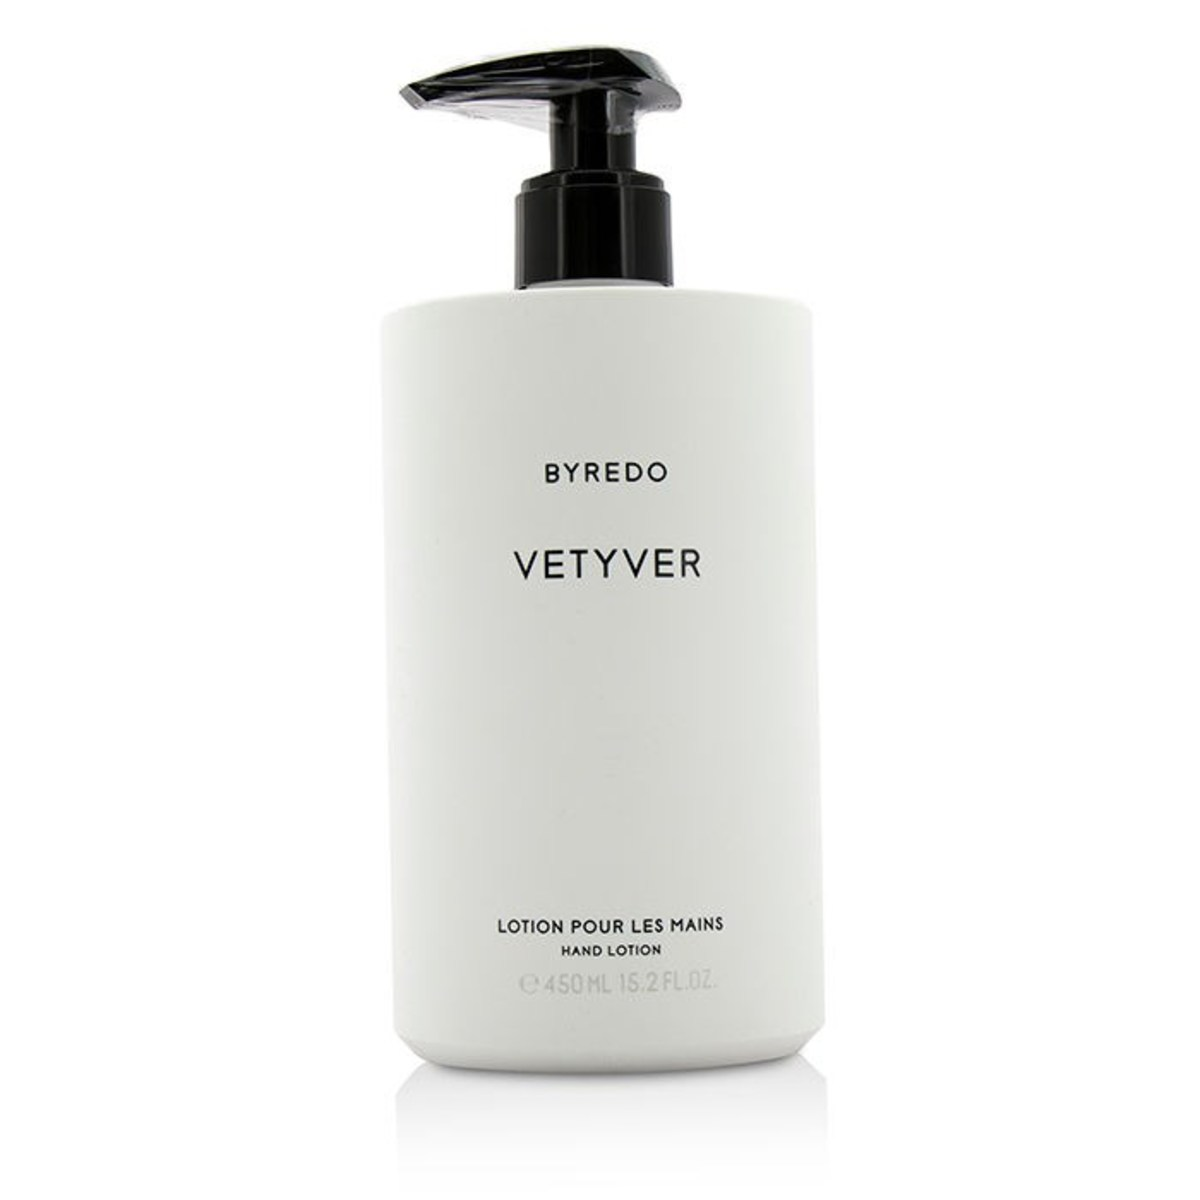 Byredo Vetyver Hand Lotion, $70, available here.